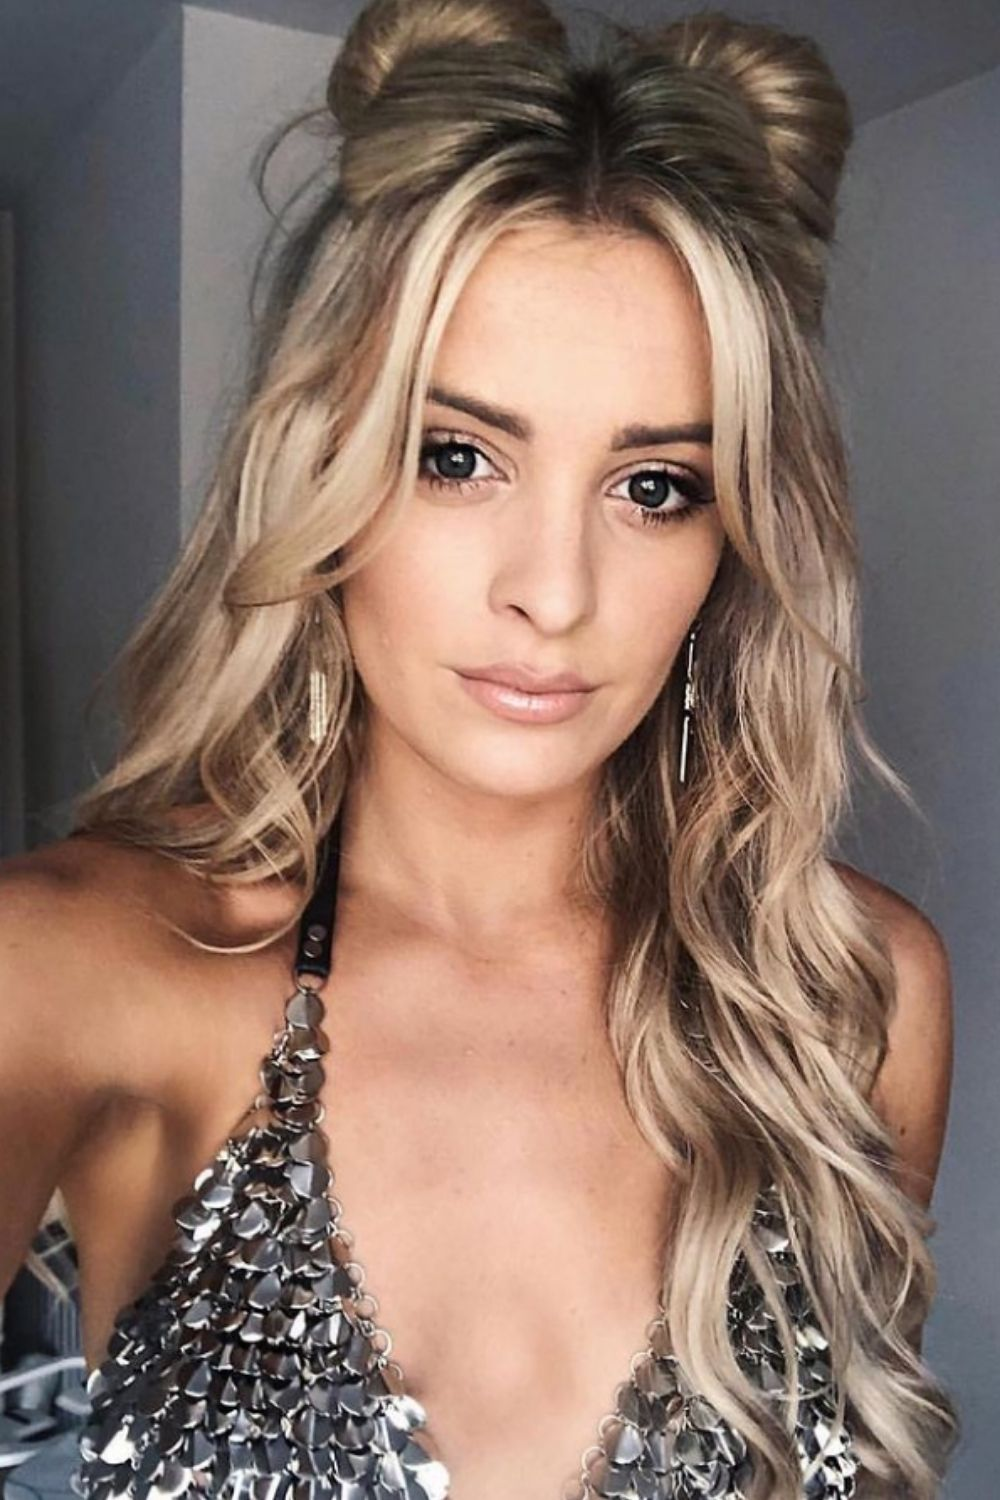 Blonde hairstyles   How to style blonde hair with curtain bangs?